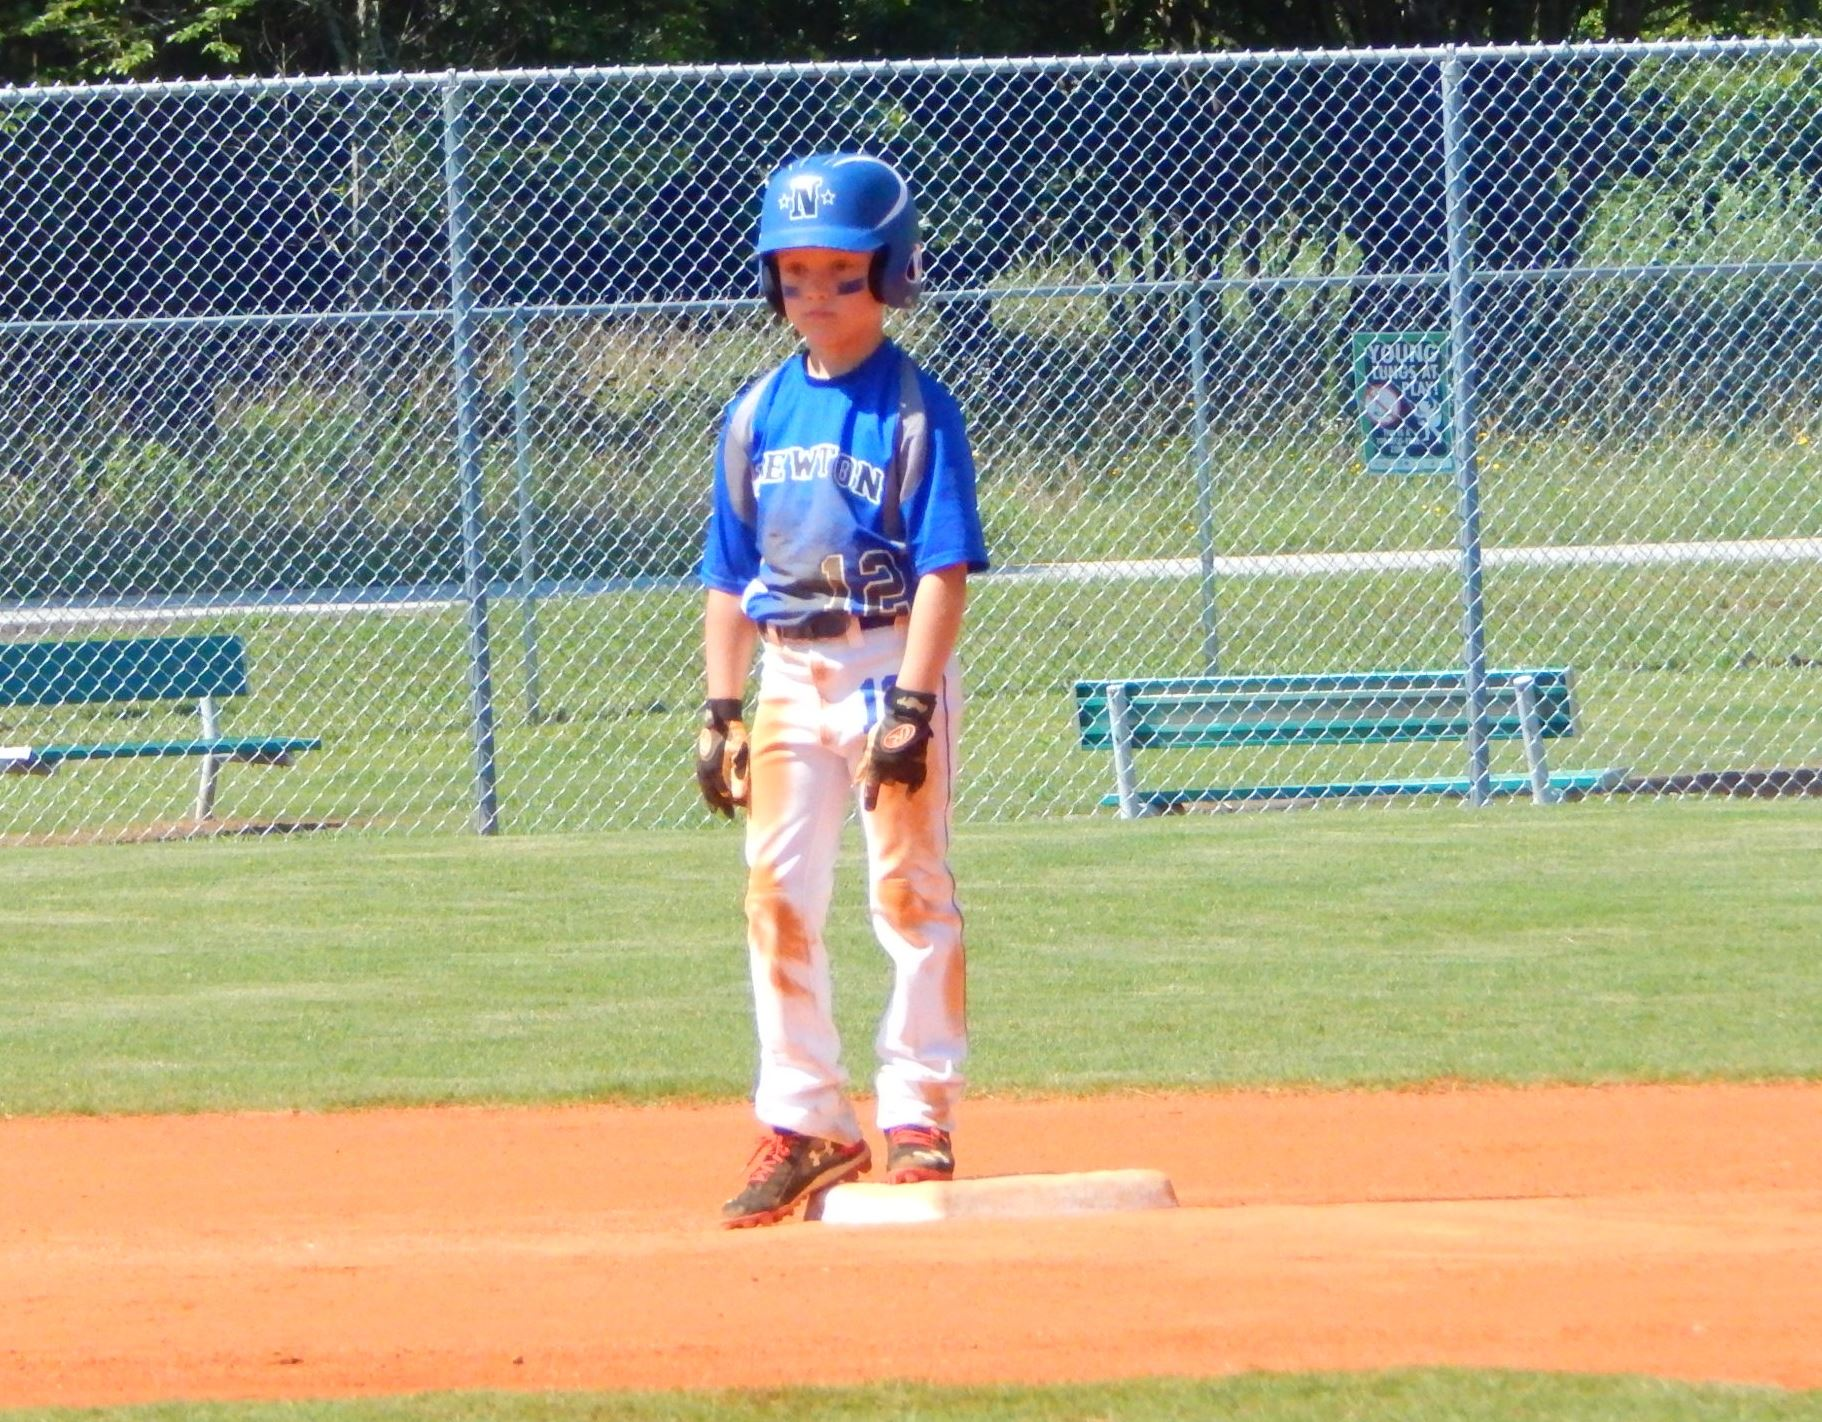 Young baseball player standing on a base